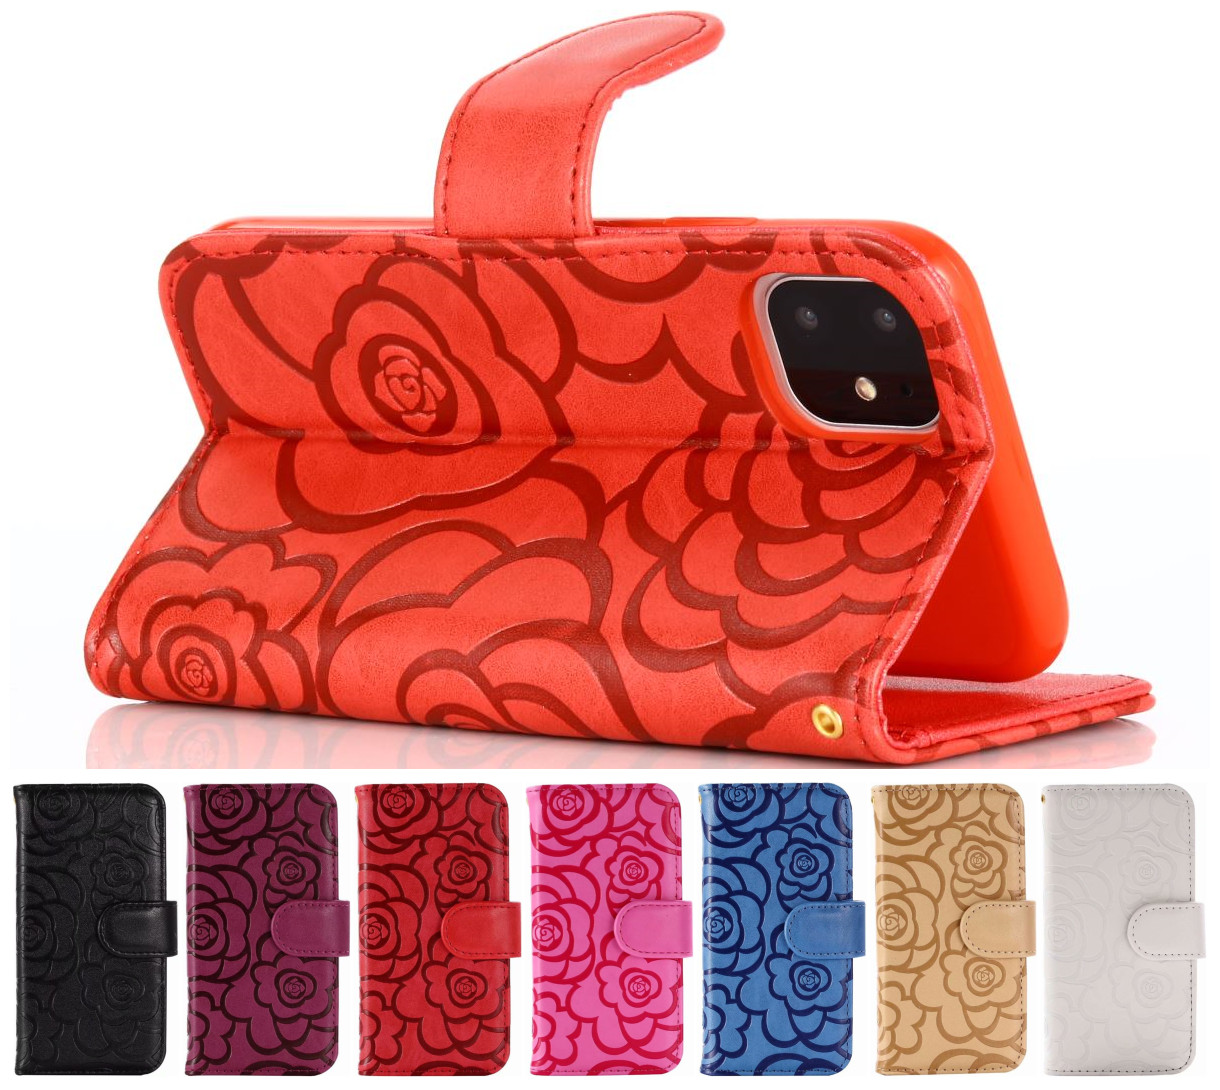 Solid Color Flower <font><b>Phone</b></font> <font><b>Case</b></font> Lady Wallet For <font><b>Samsung</b></font> Galaxy S5 S6 Edge <font><b>S7</b></font> Luxury Rose Flip Leather <font><b>Phone</b></font> Bag Stand Capa O14H image